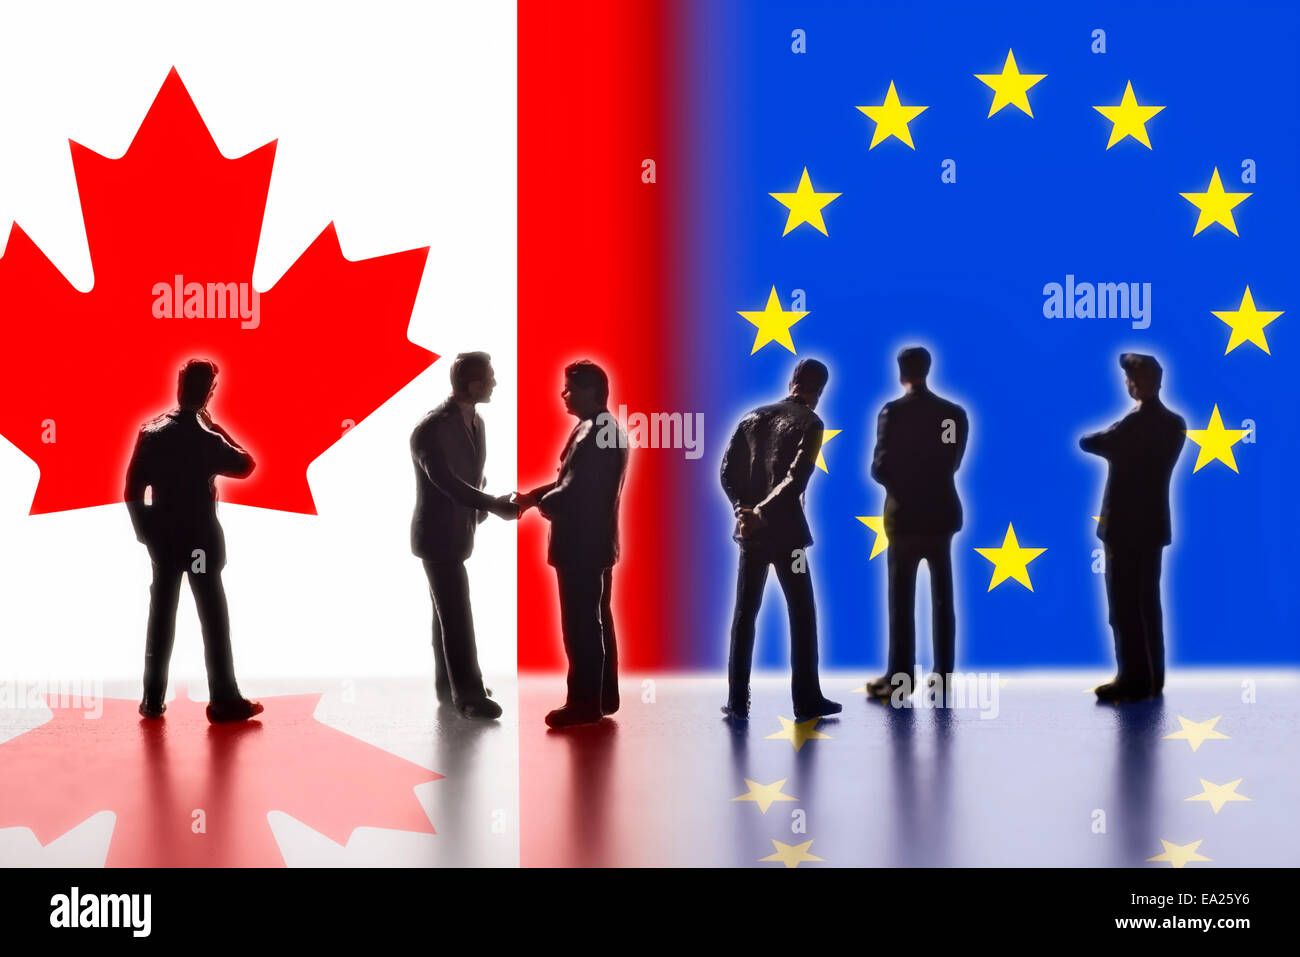 Model figures symbolizing politicians are facing the flags of Canada and the EU. Two of them shake hands. - Stock Image